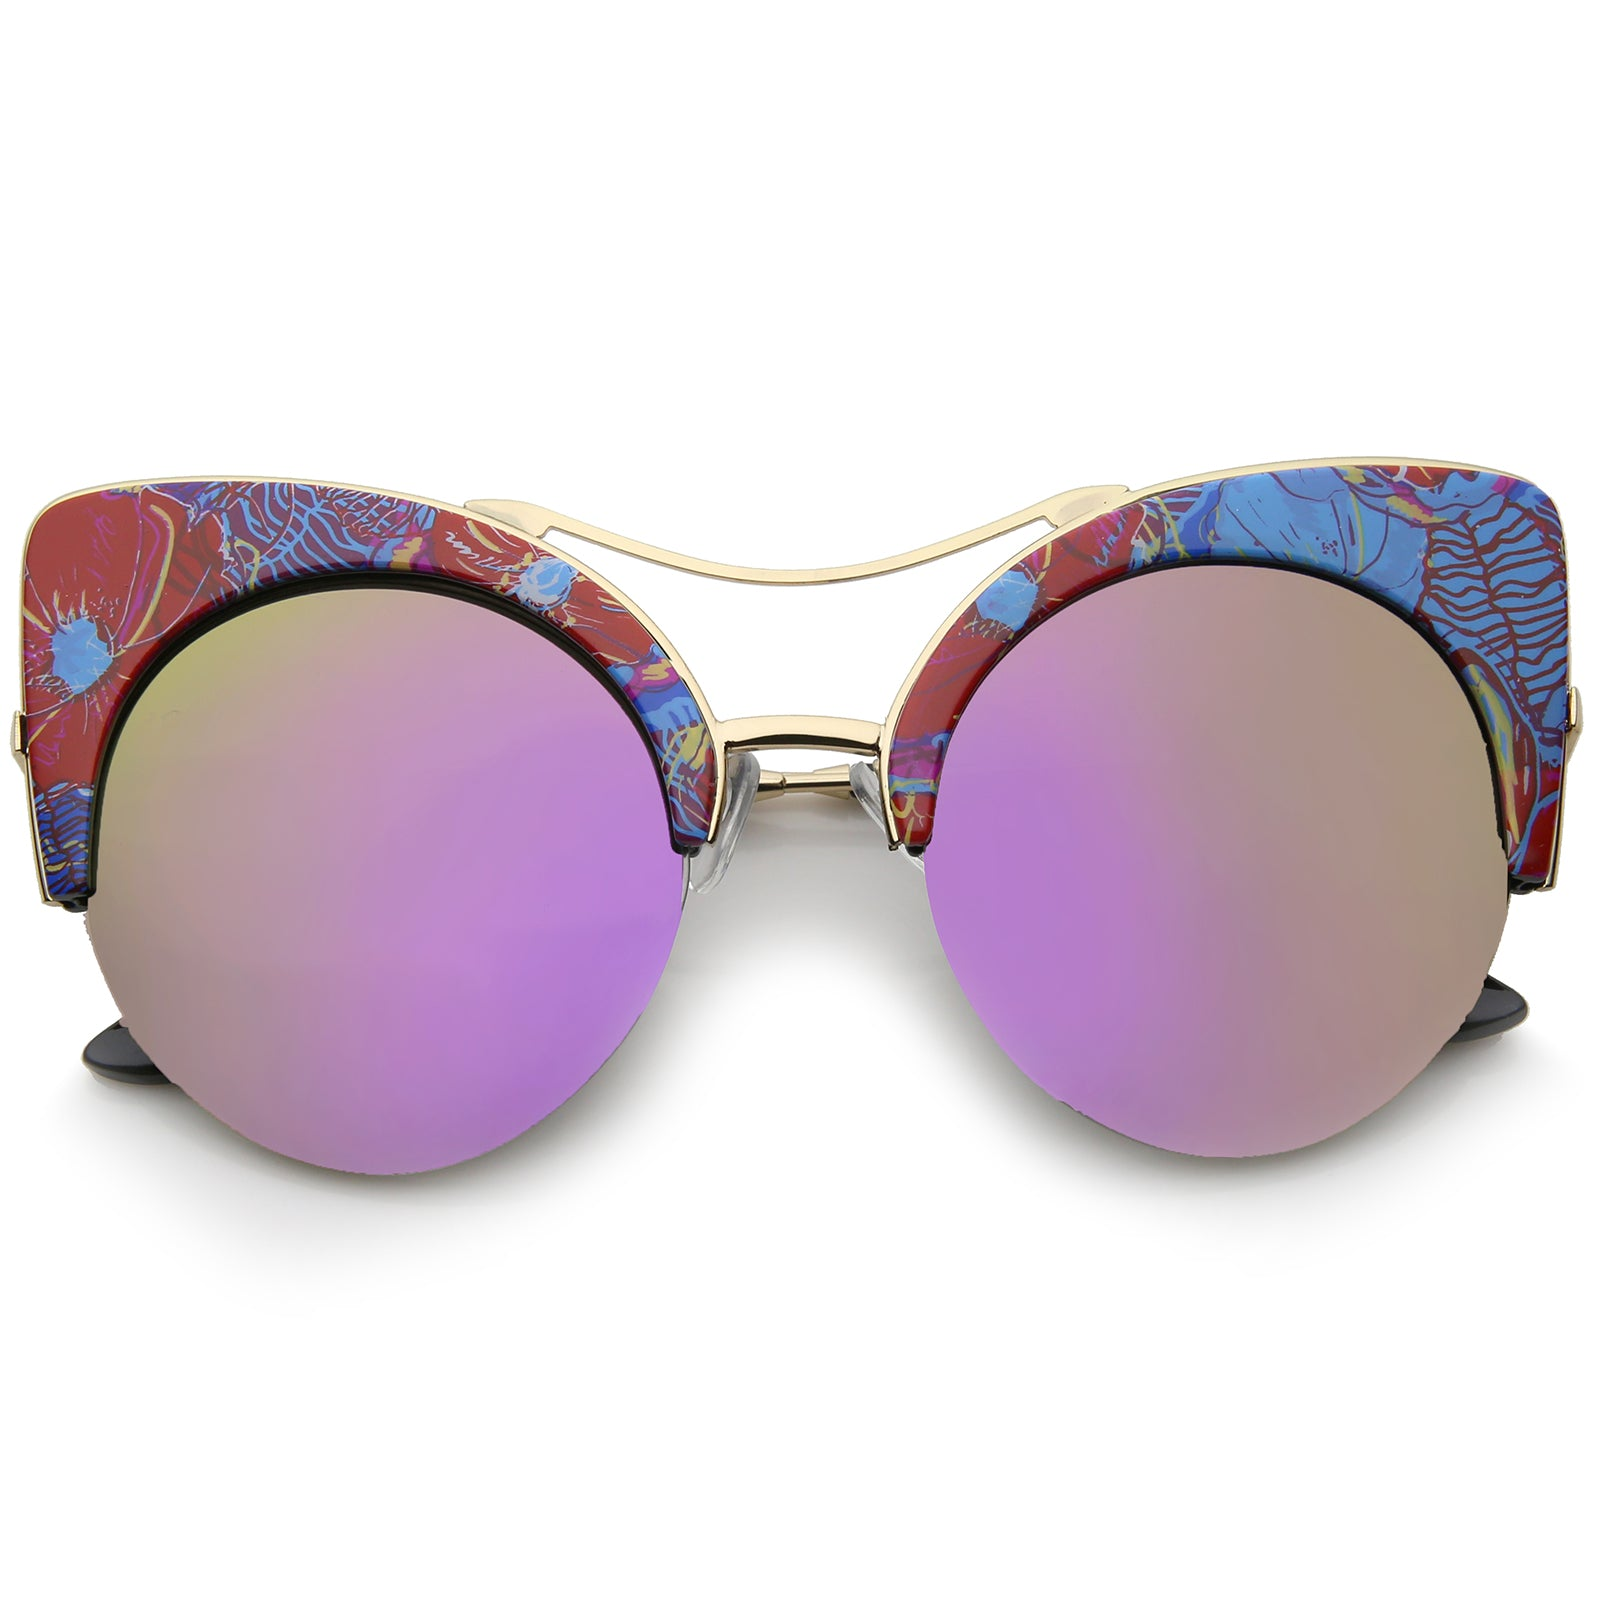 Women's Flat Lens Floral Print Semi-Rimless Round Cat Eye Sunglasses 52mm - sunglass.la - 1